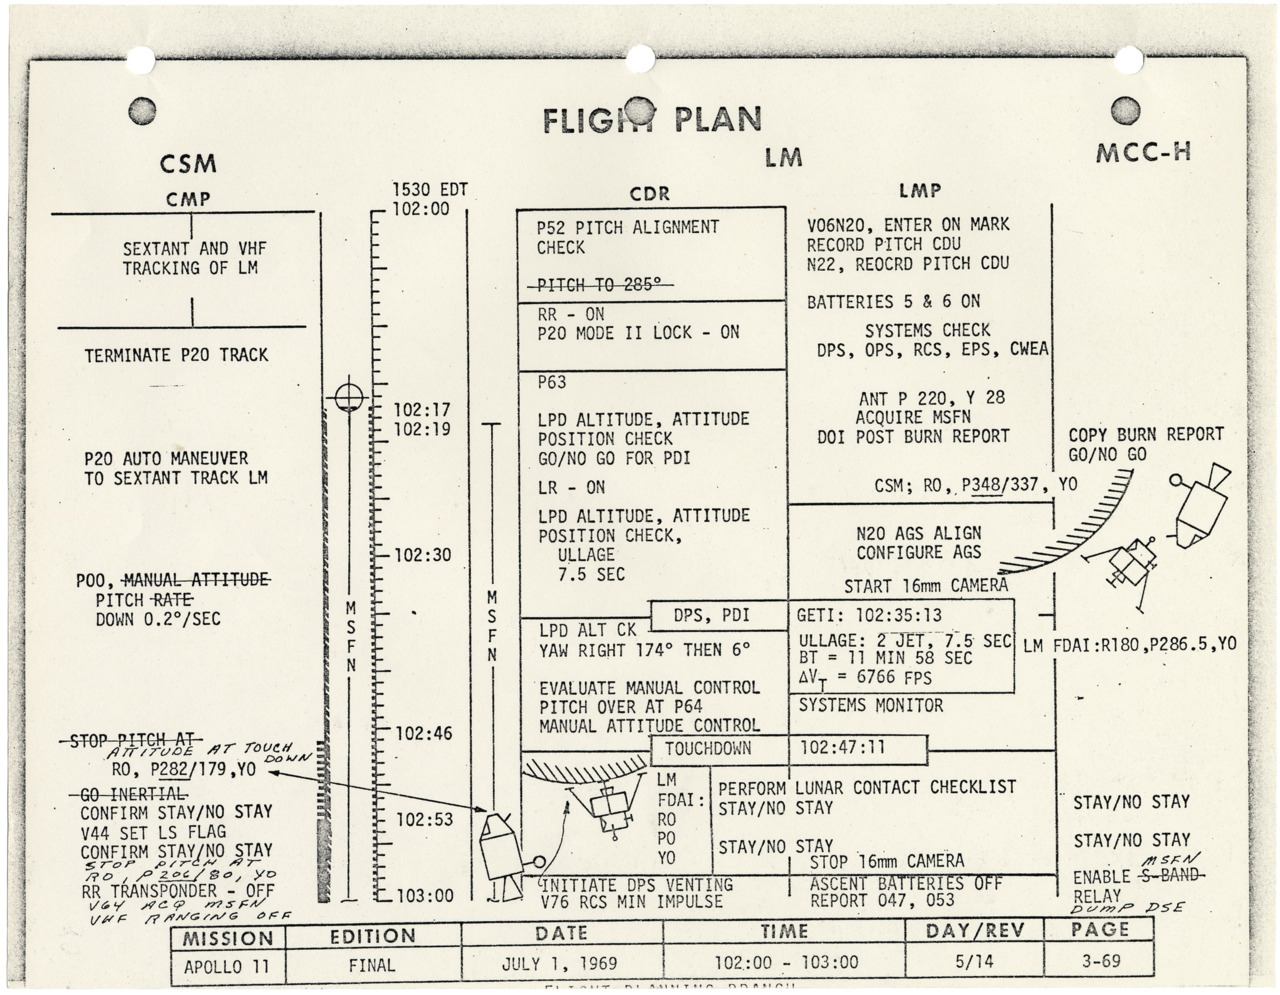 "Apollo 11 Flight Plan; Records of the National Aeronautics and Space Administration. The flight plan for Apollo 11 was a minute-by-minute time line of activities for the mission crew—Neil Armstrong, Mike Collins, and Edwin ""Buzz"" Aldrin—and Mission Control in Houston. The flight was launched July 16, 1969. Touchdown on the moon took place, as scheduled, on July 20, 102 hours, 47 minutes, and 11 seconds after launch from Cape Kennedy. The astronauts spent 21 hours and 36 minutes on the moon, and returned to Earth on July 24."